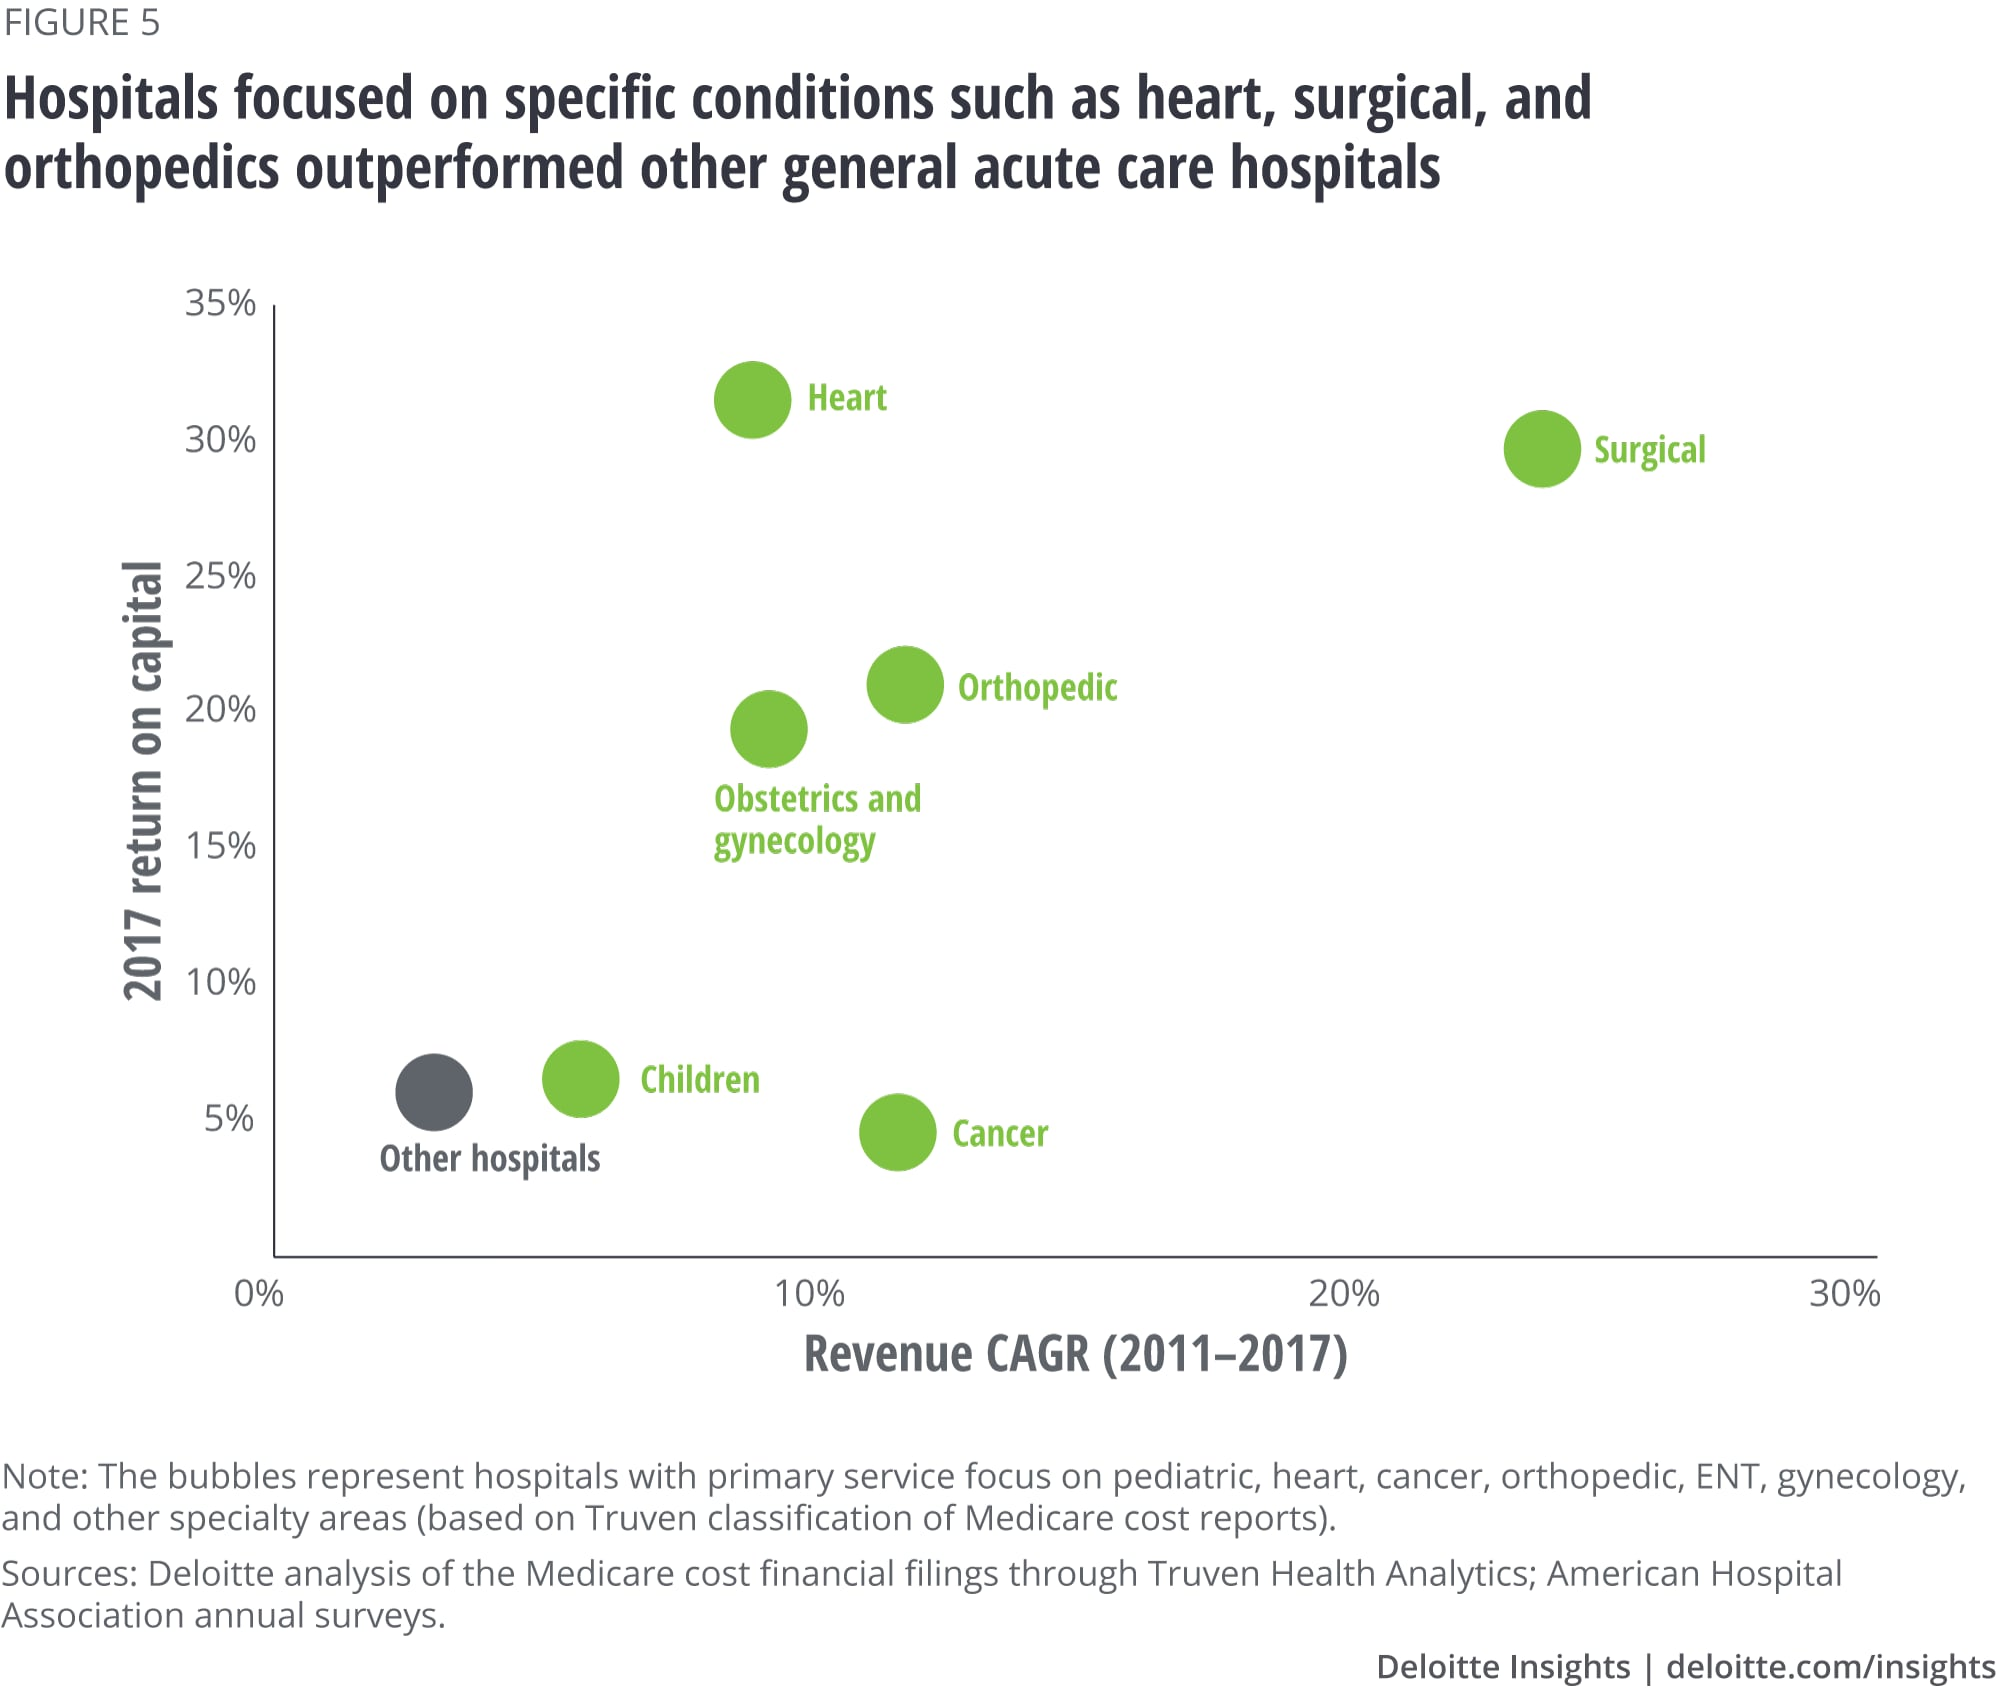 Hospitals focused on specific conditions such as heart, surgical, and orthopedics outperformed other general acute care hospitals